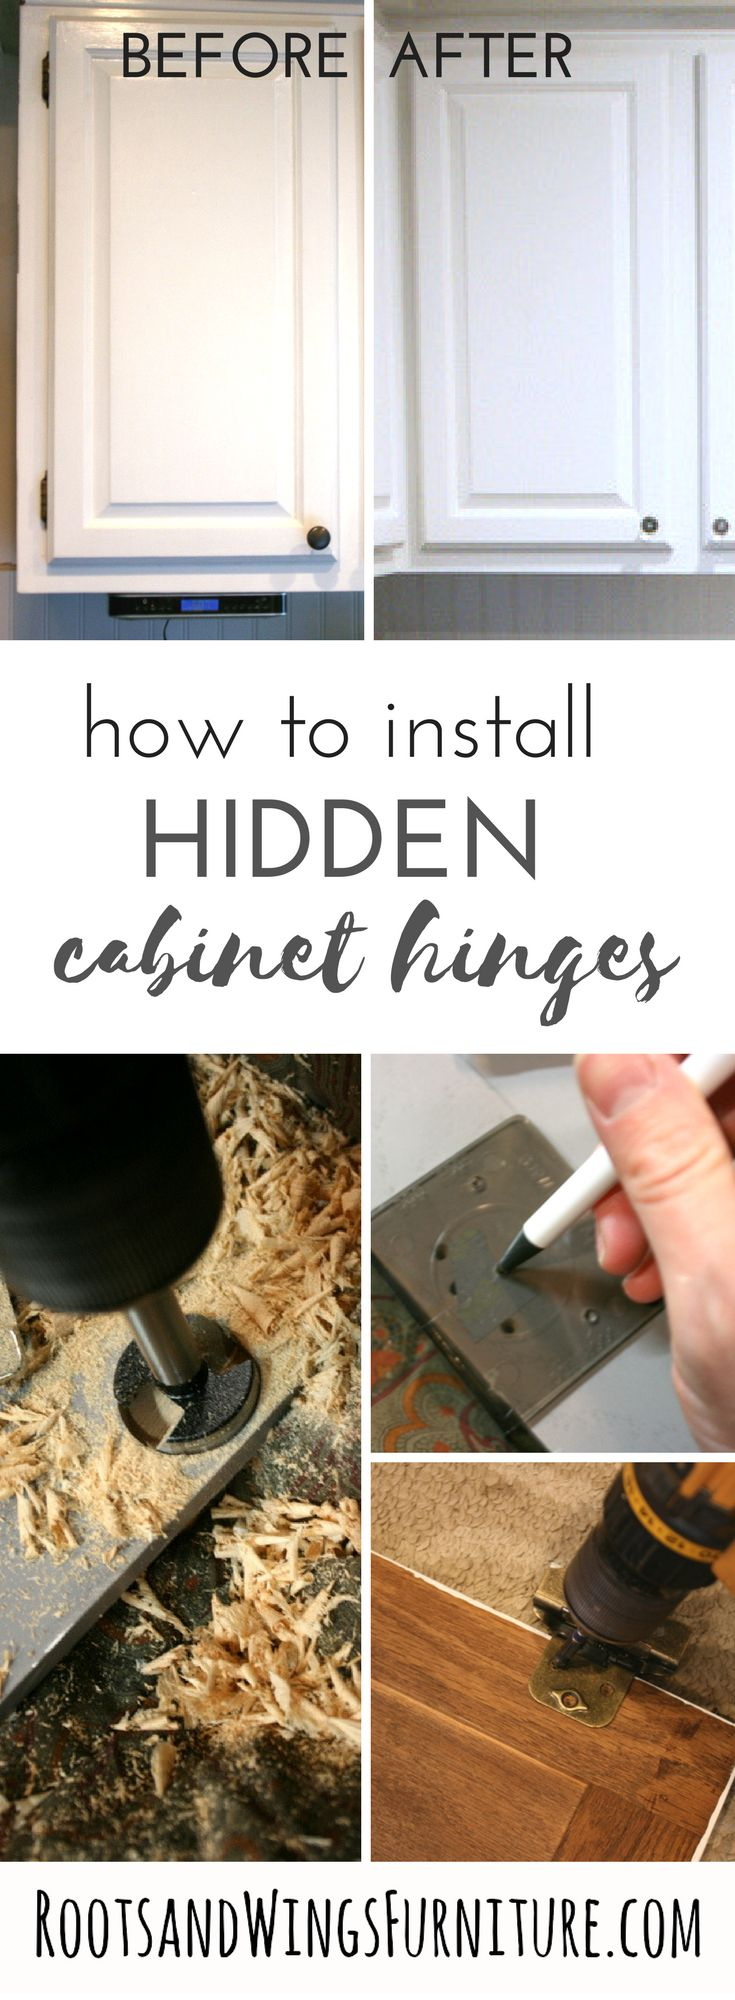 How to transform the look of your cabinets by installing hidden overlay hinges to your cabinet doors.  A tutorial on how it's done!